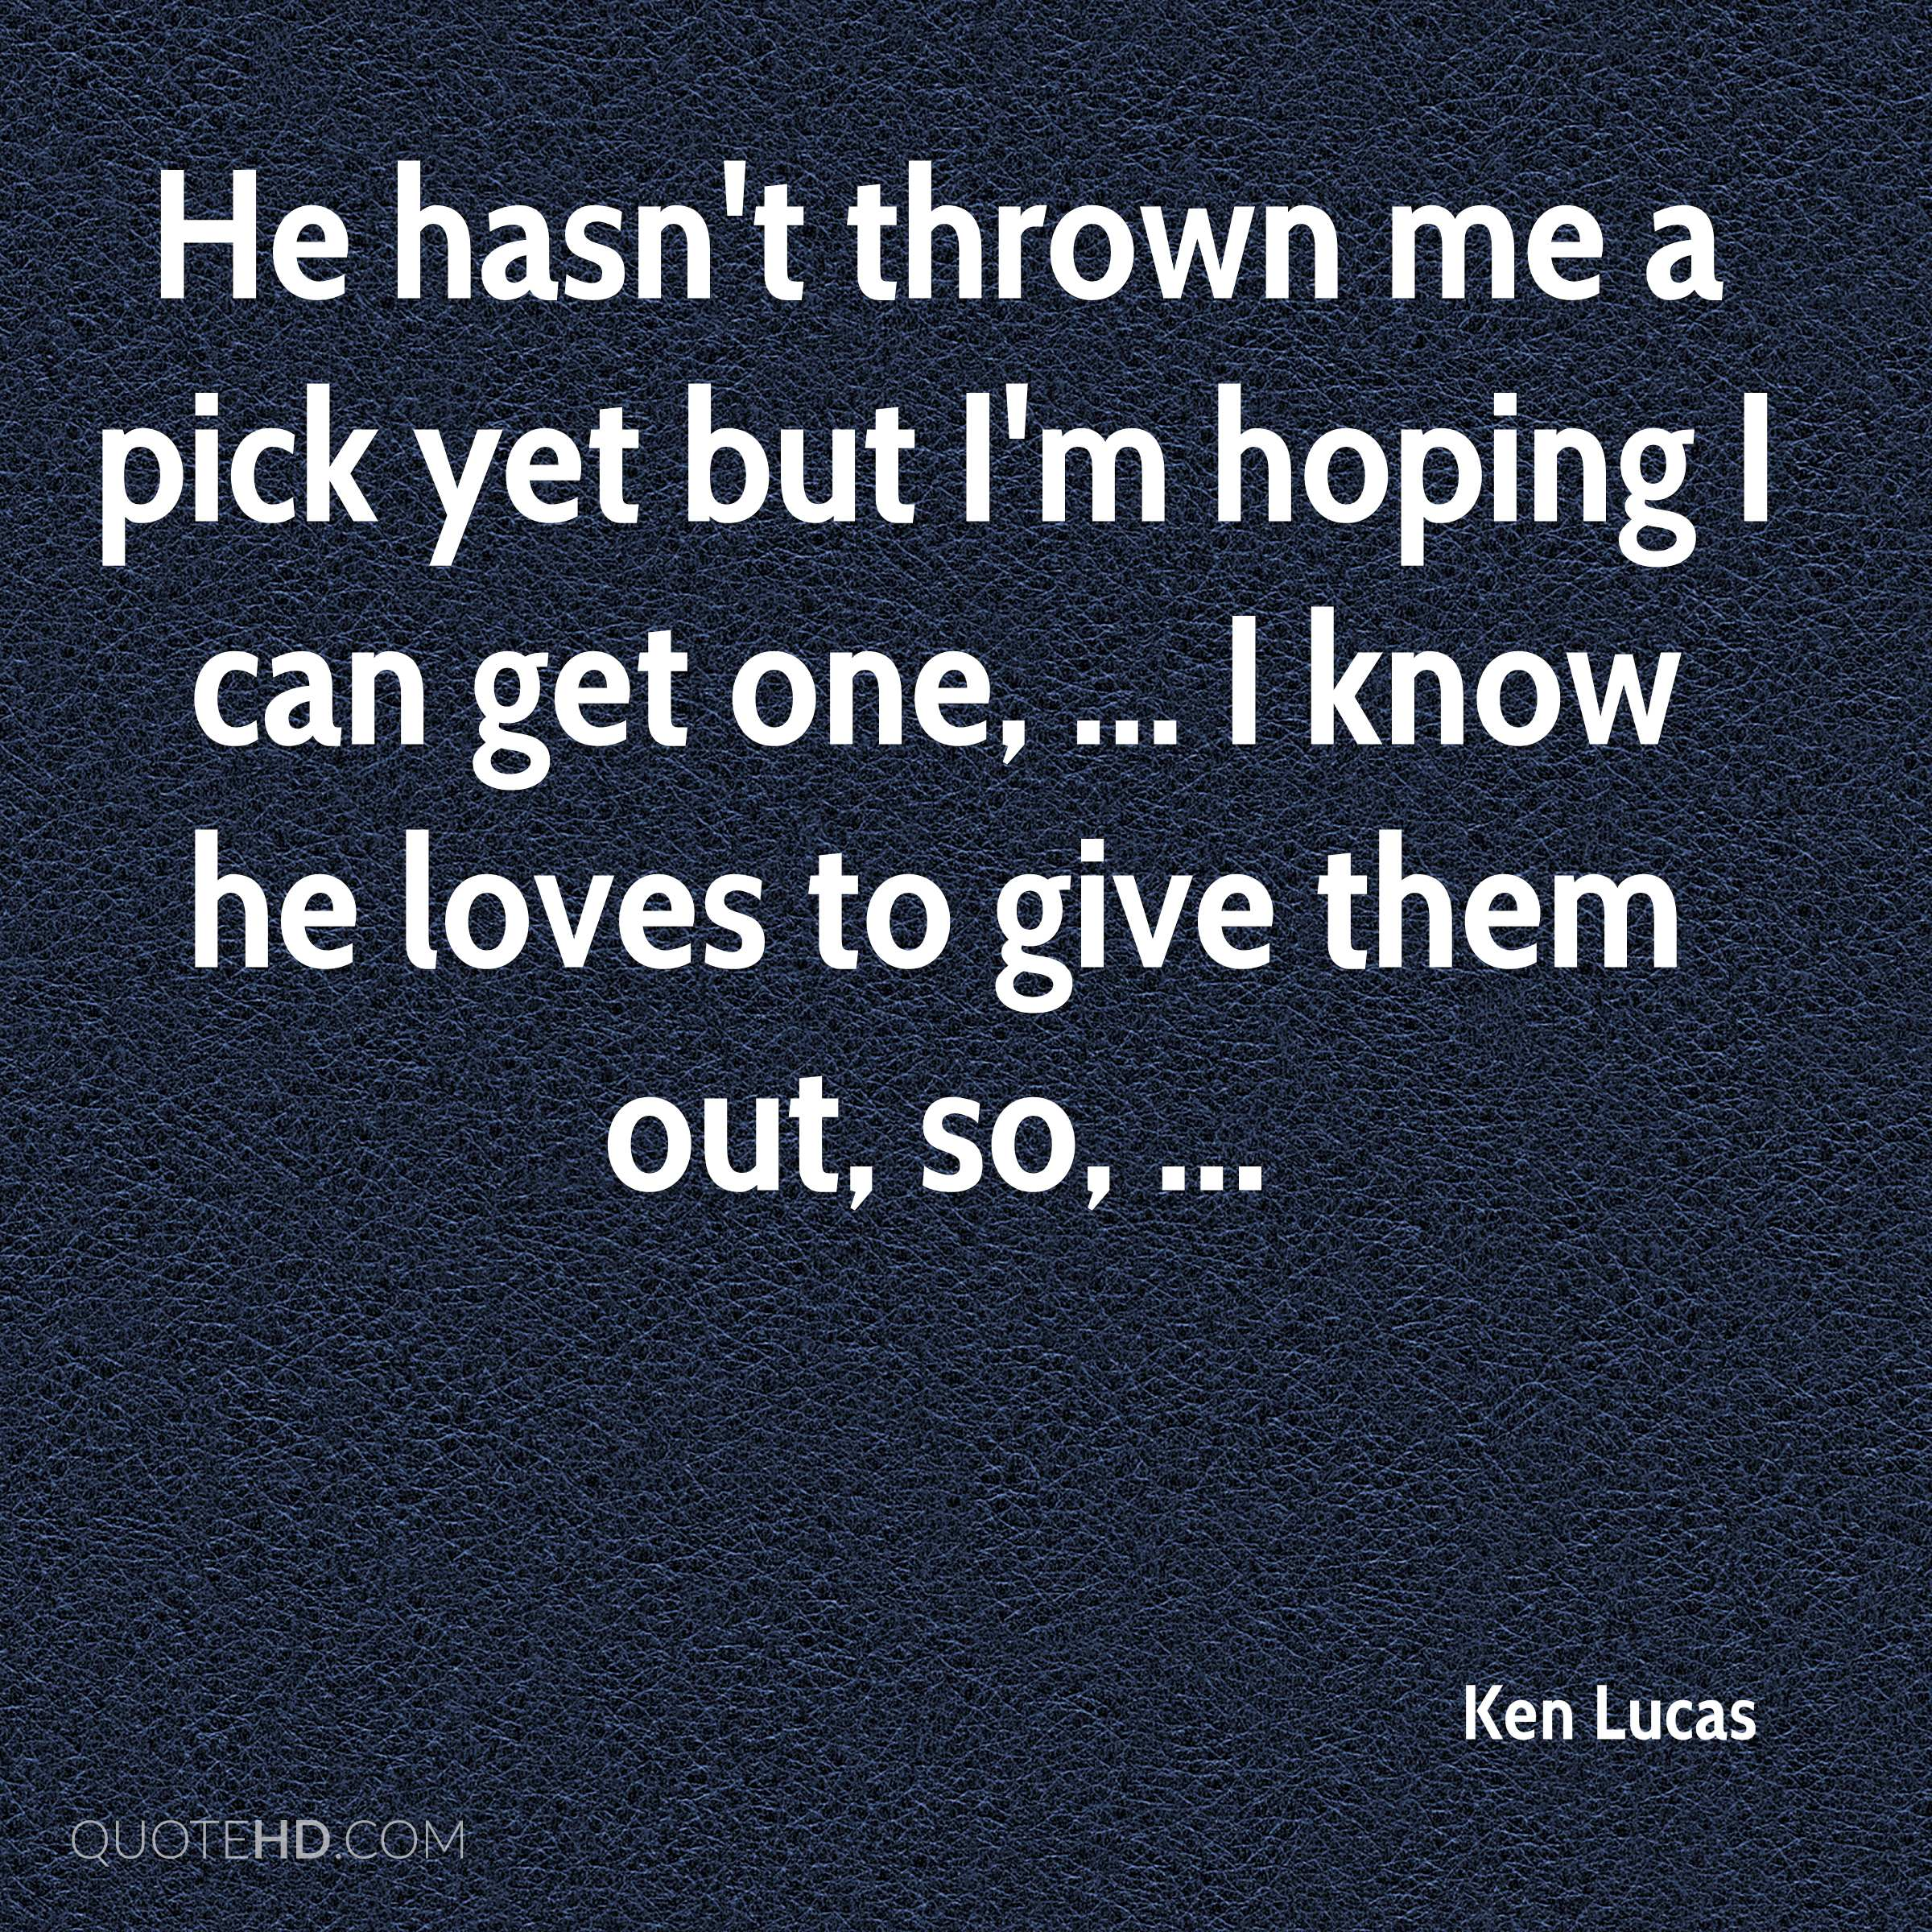 He hasn't thrown me a pick yet but I'm hoping I can get one, ... I know he loves to give them out, so, ...